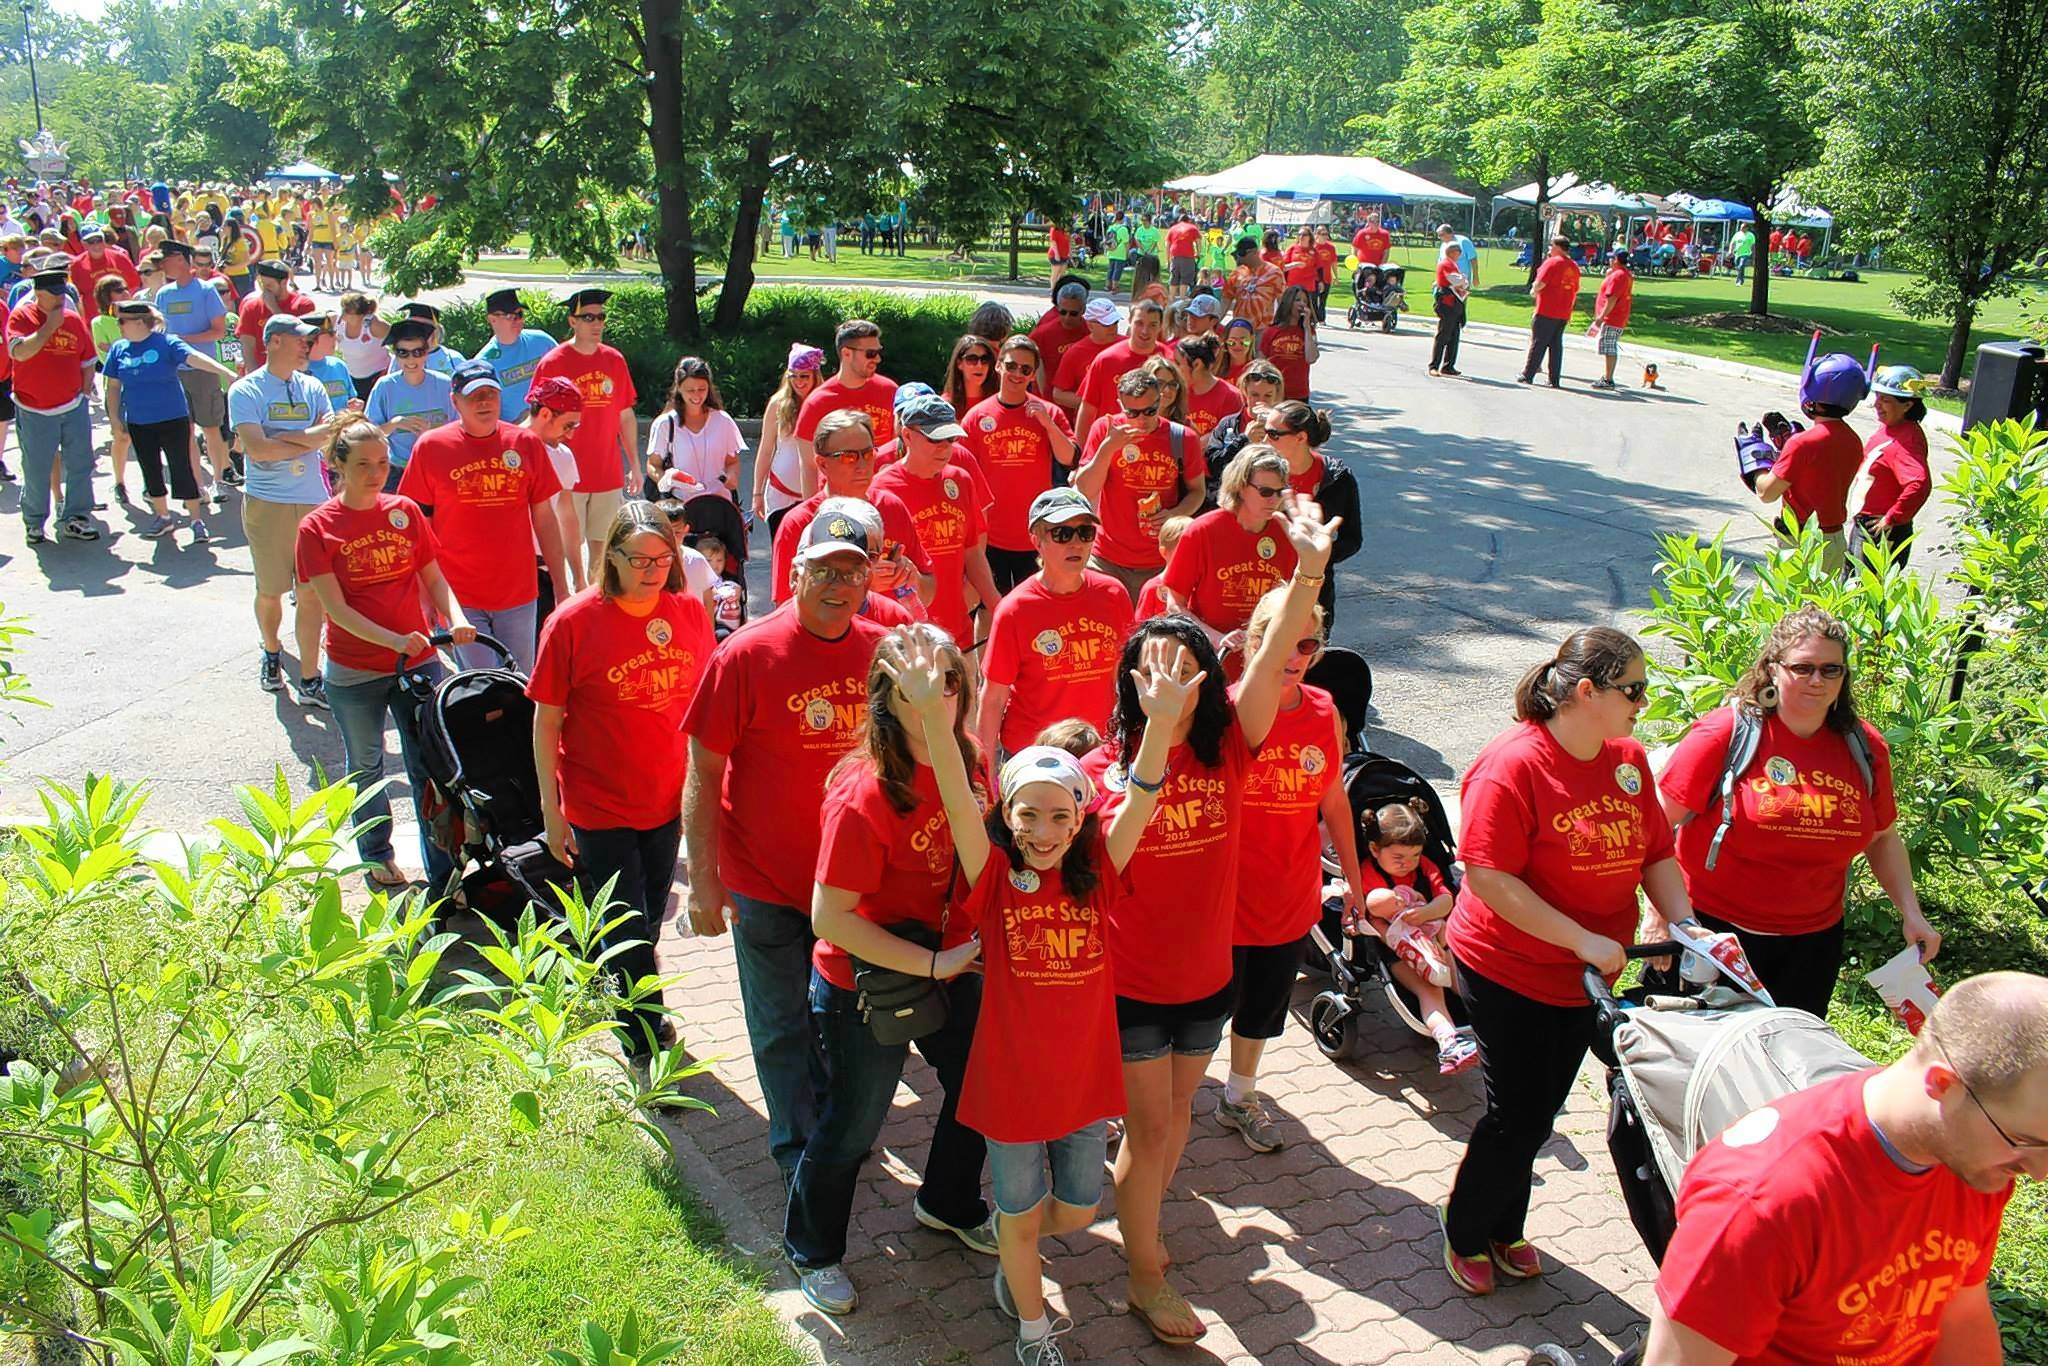 Great Steps 4NF draws hundreds of walkers from throughout the region to Naperville to raise money for research into neurofibromatosis, a genetic disorder that causes tumors to grow spontaneously on sufferers' nerve endings.